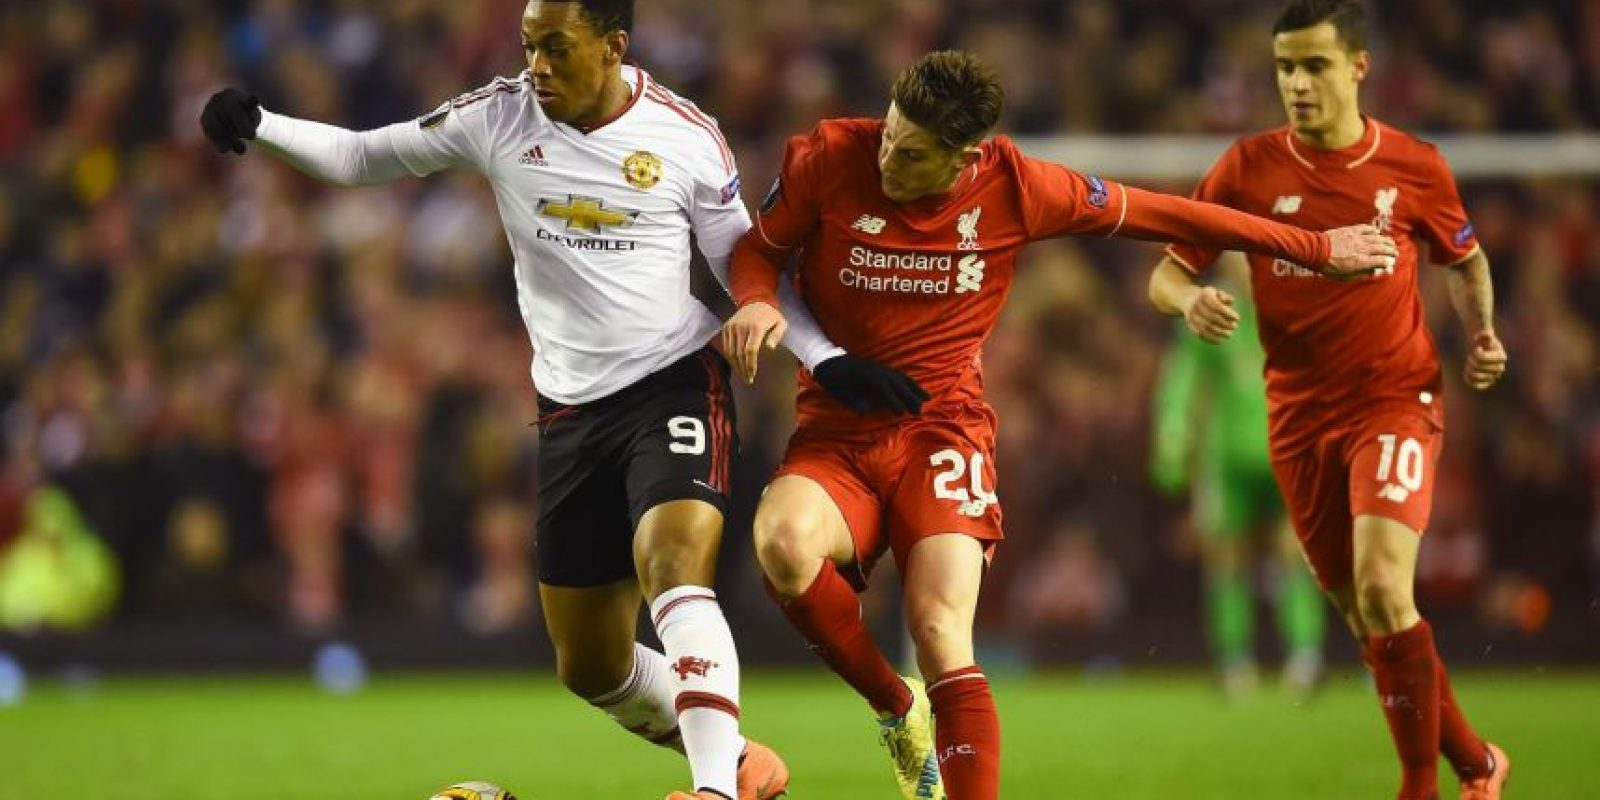 Manchester United vs. Liverpool Foto:Getty Images